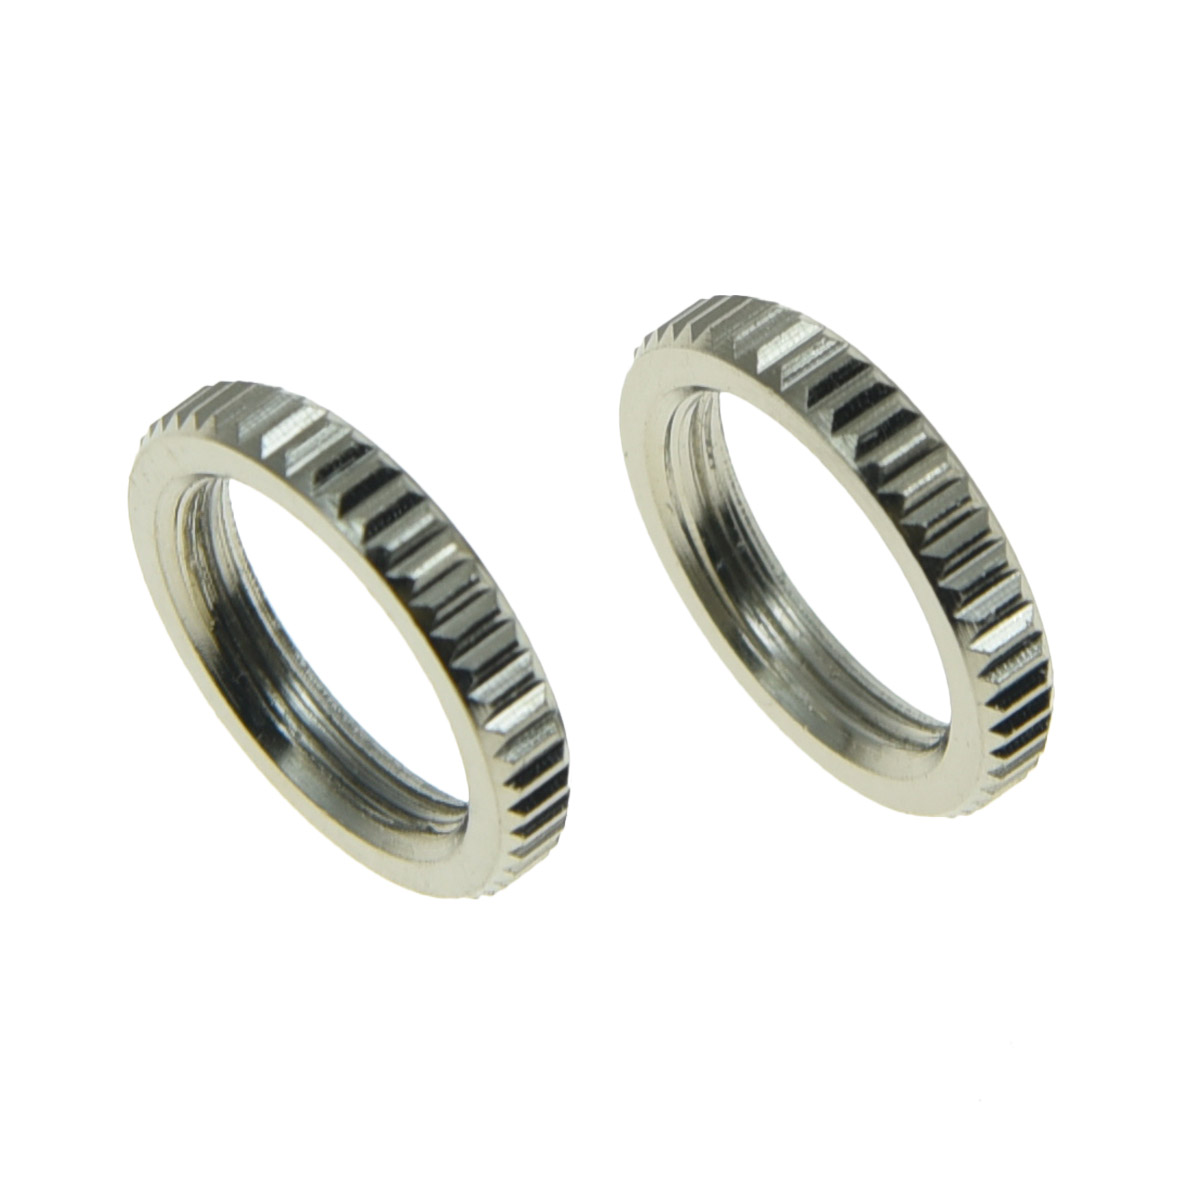 Replacement Knurled Nut for Toggle Switch 10pcs 15//32 Fine Thread